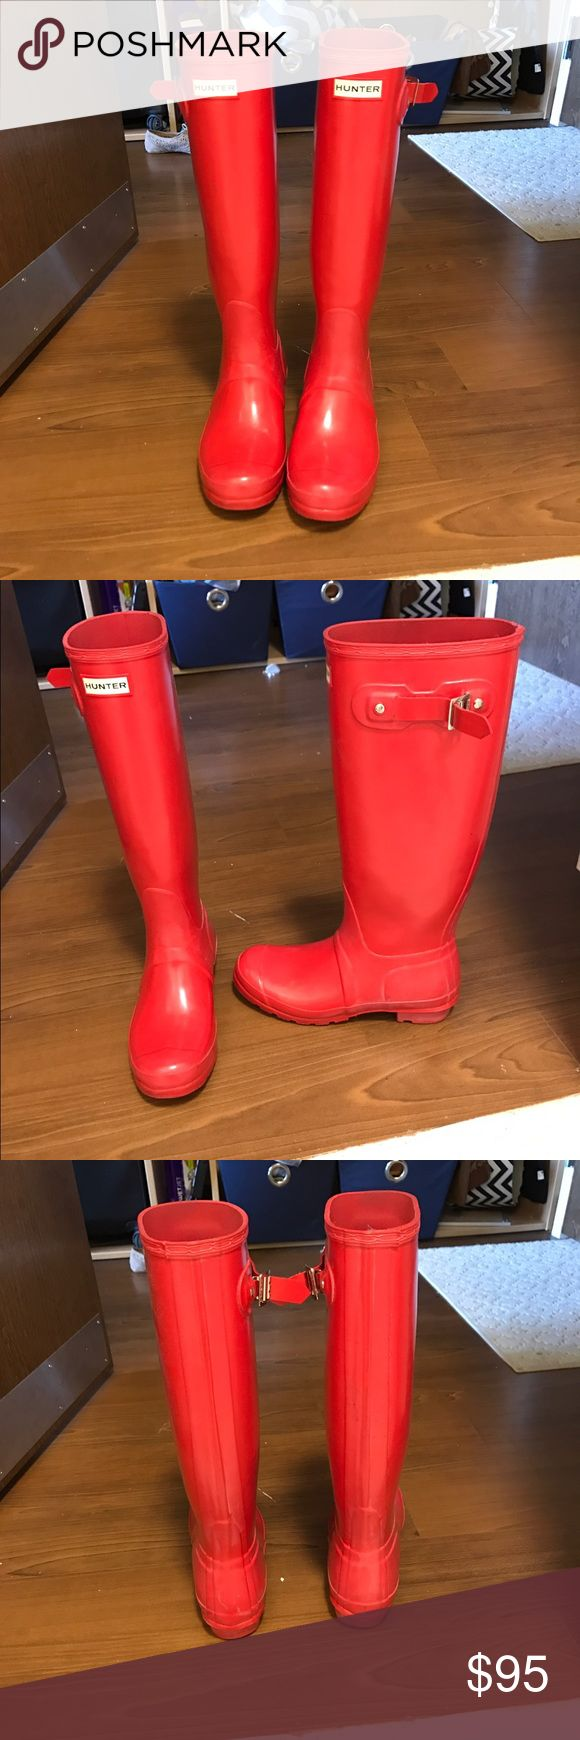 Tall Red Matte Hunter Boots For sale , great condition , everything intact. Only worn couple times. More detailed pictures or questions just request . Offers welcomed Hunter Boots Shoes Winter & Rain Boots